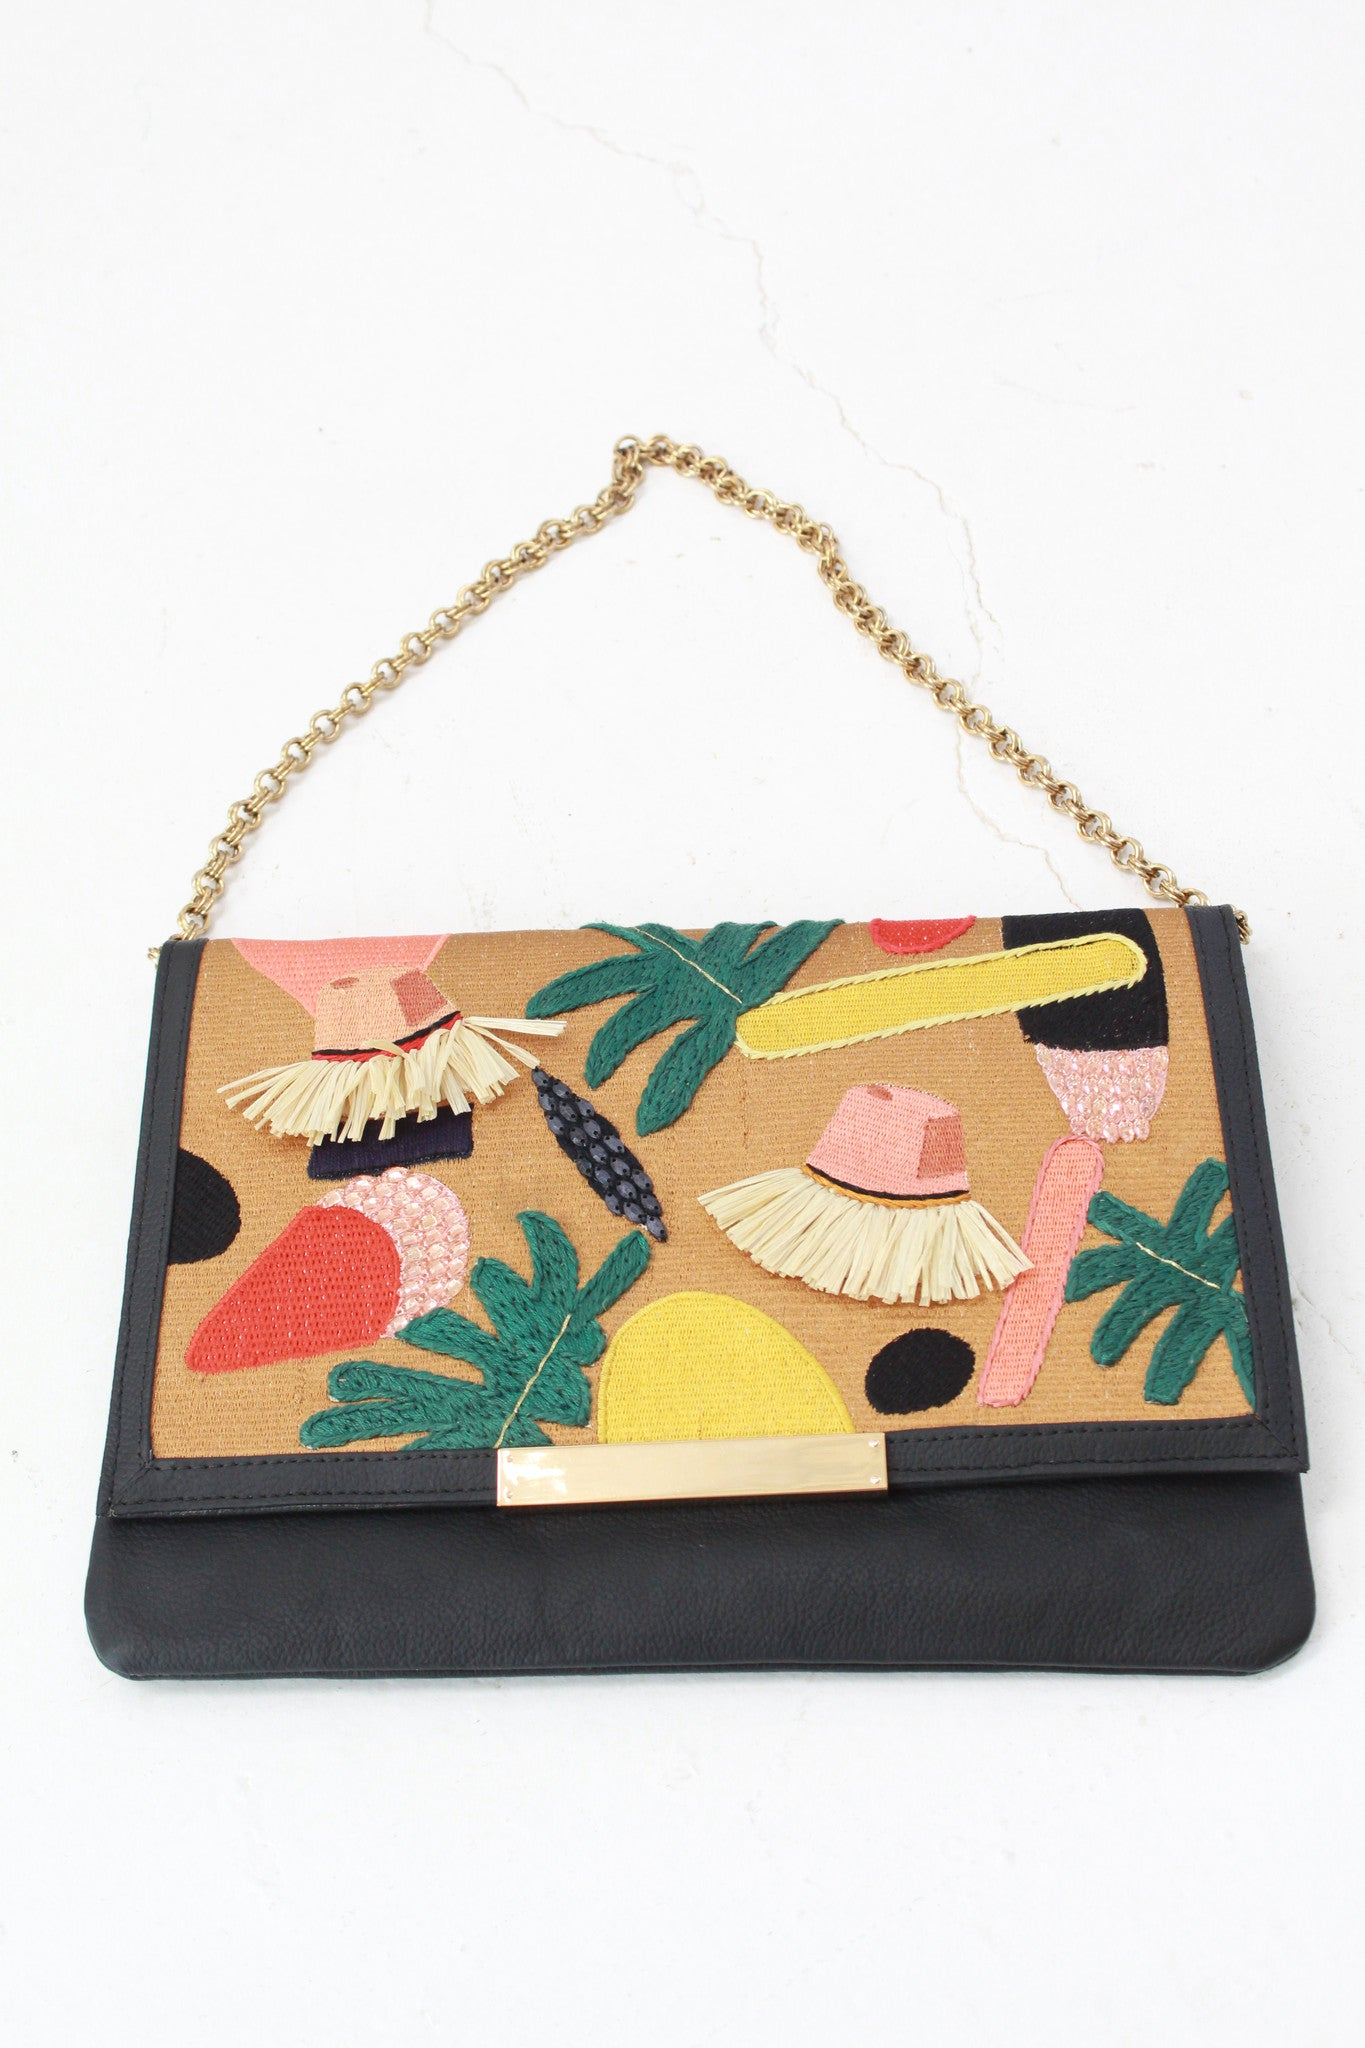 Beklina Lizzie Fortunato Port Of Call Clutch Explorers Club